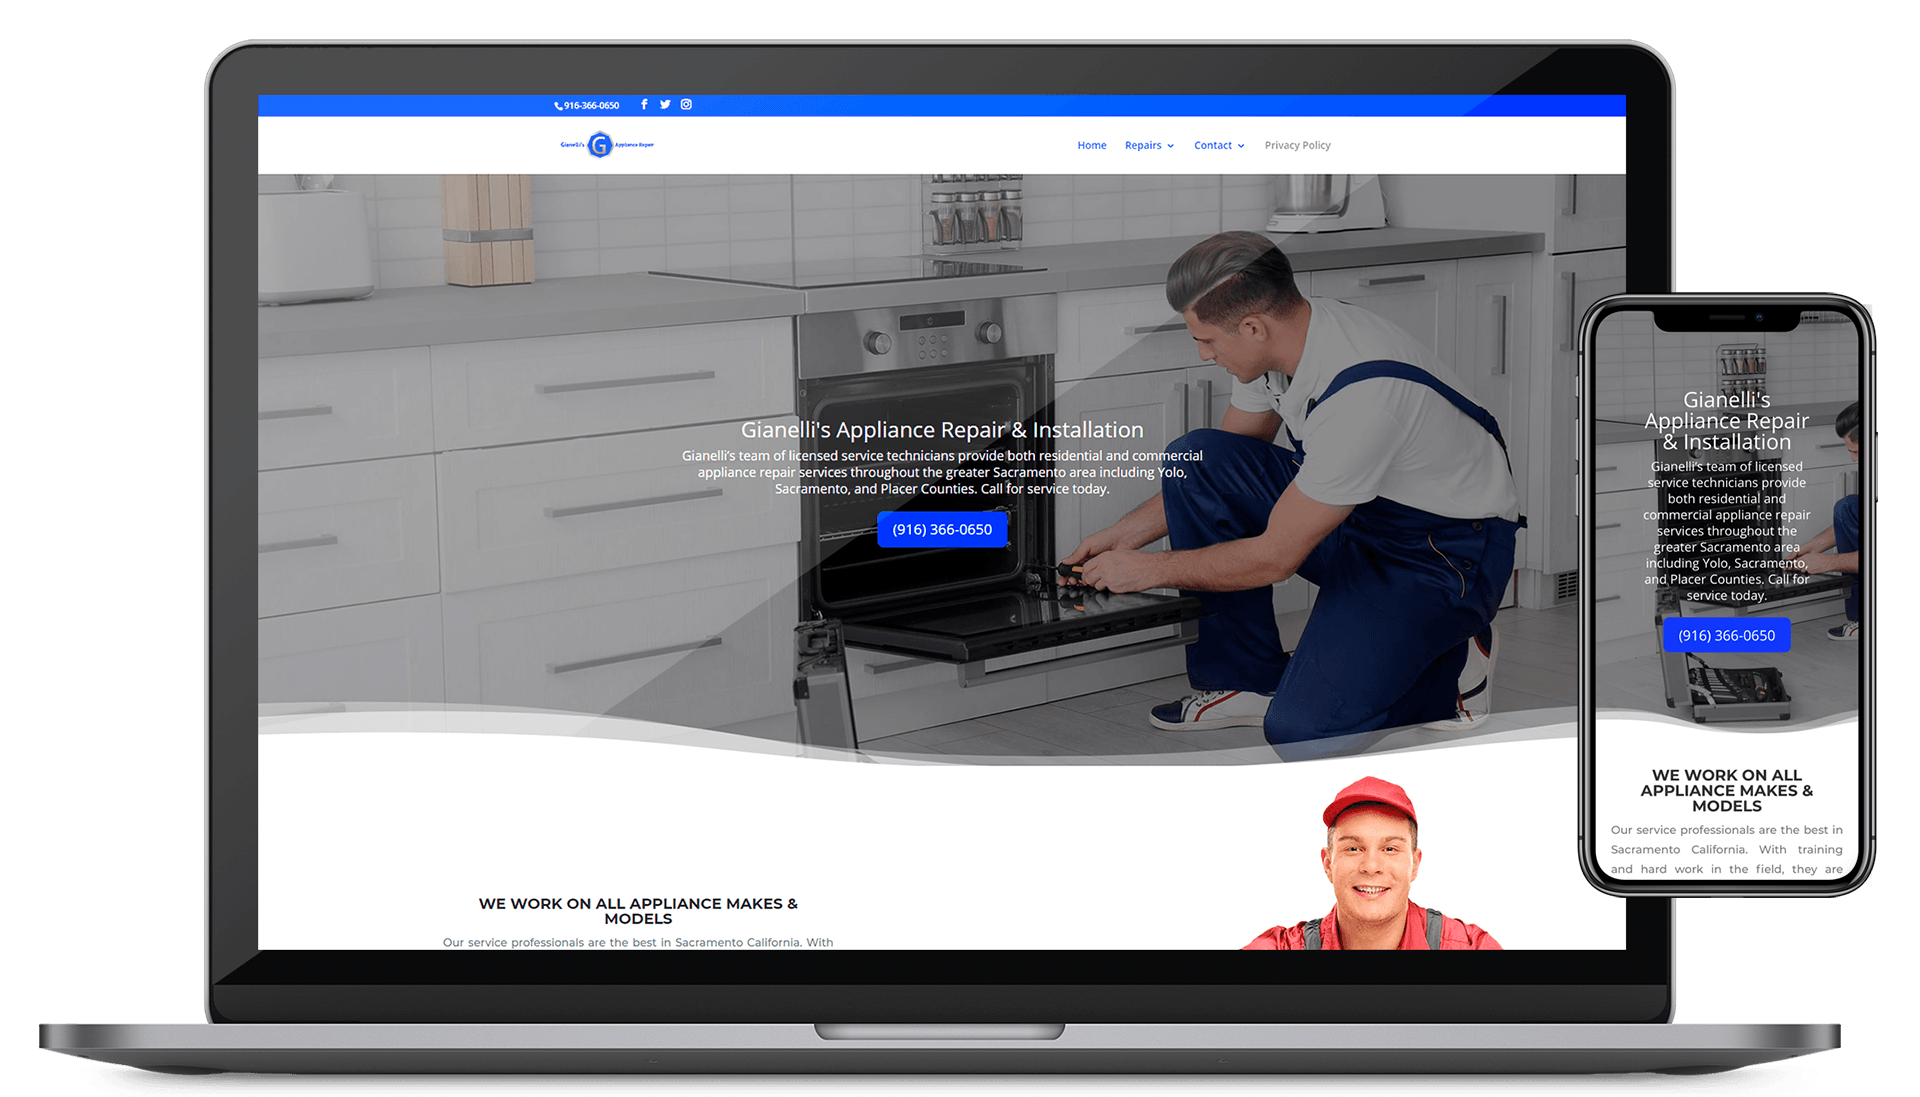 Blue Frog Web Design makes the Best Repair Websites! Do you have a Repair business that needs a modern website? Call us today!  #WordPress. #ResponsiveDesign. #SEO. #MobileFriendly. #Marketing. #GraphicDesign